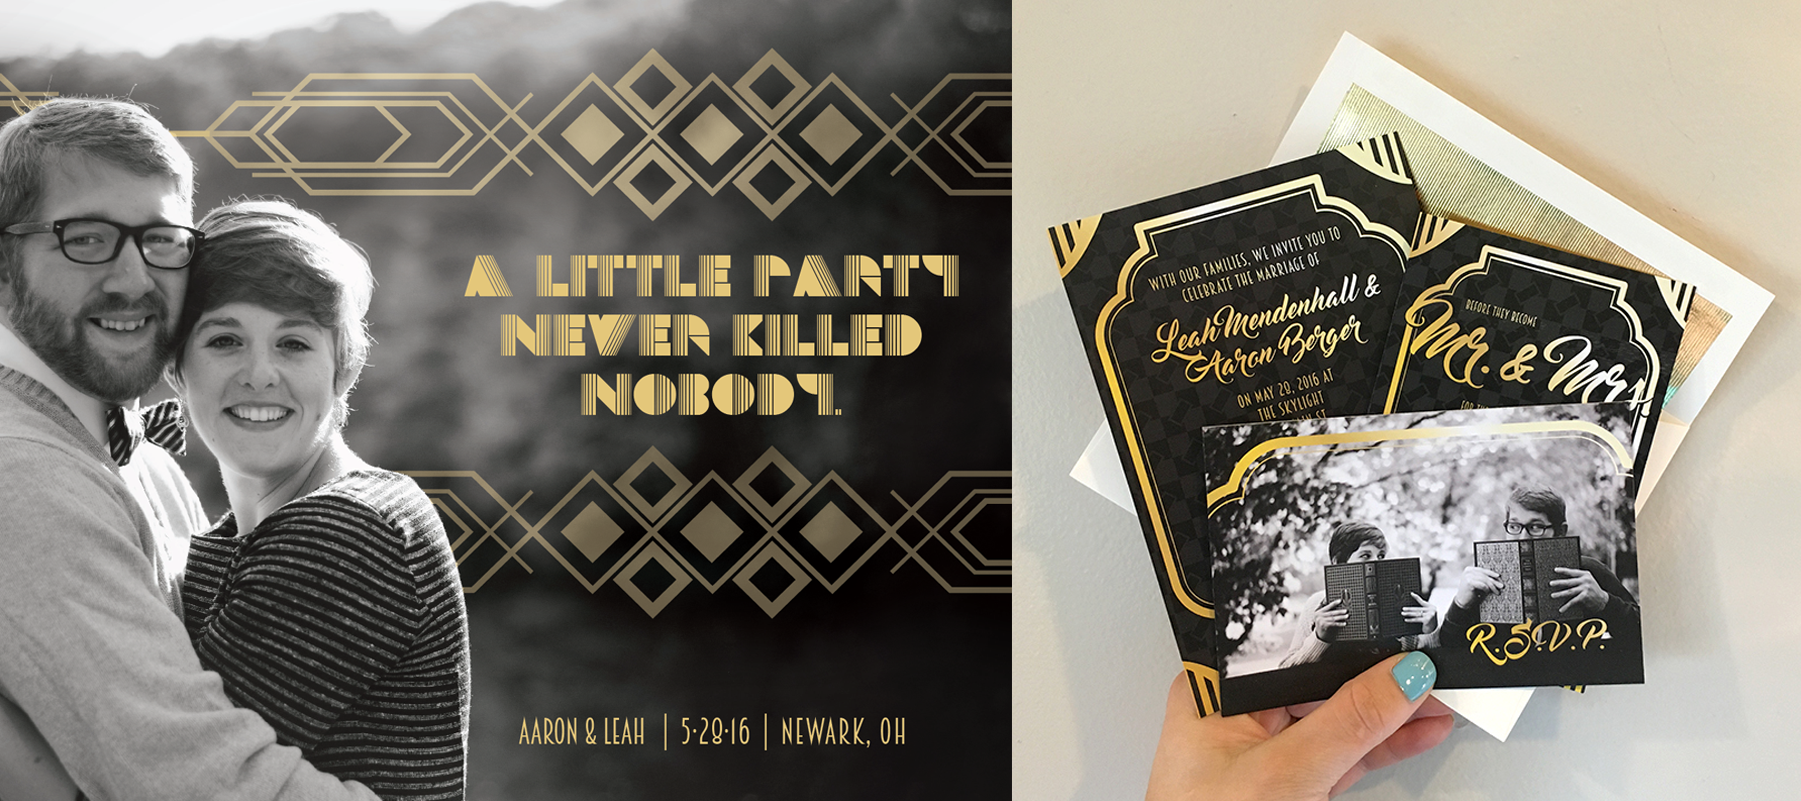 Wedding Invitations  | Save the Dates and formal invitation package. | Client: Aaron and Leah Berger | November 2015